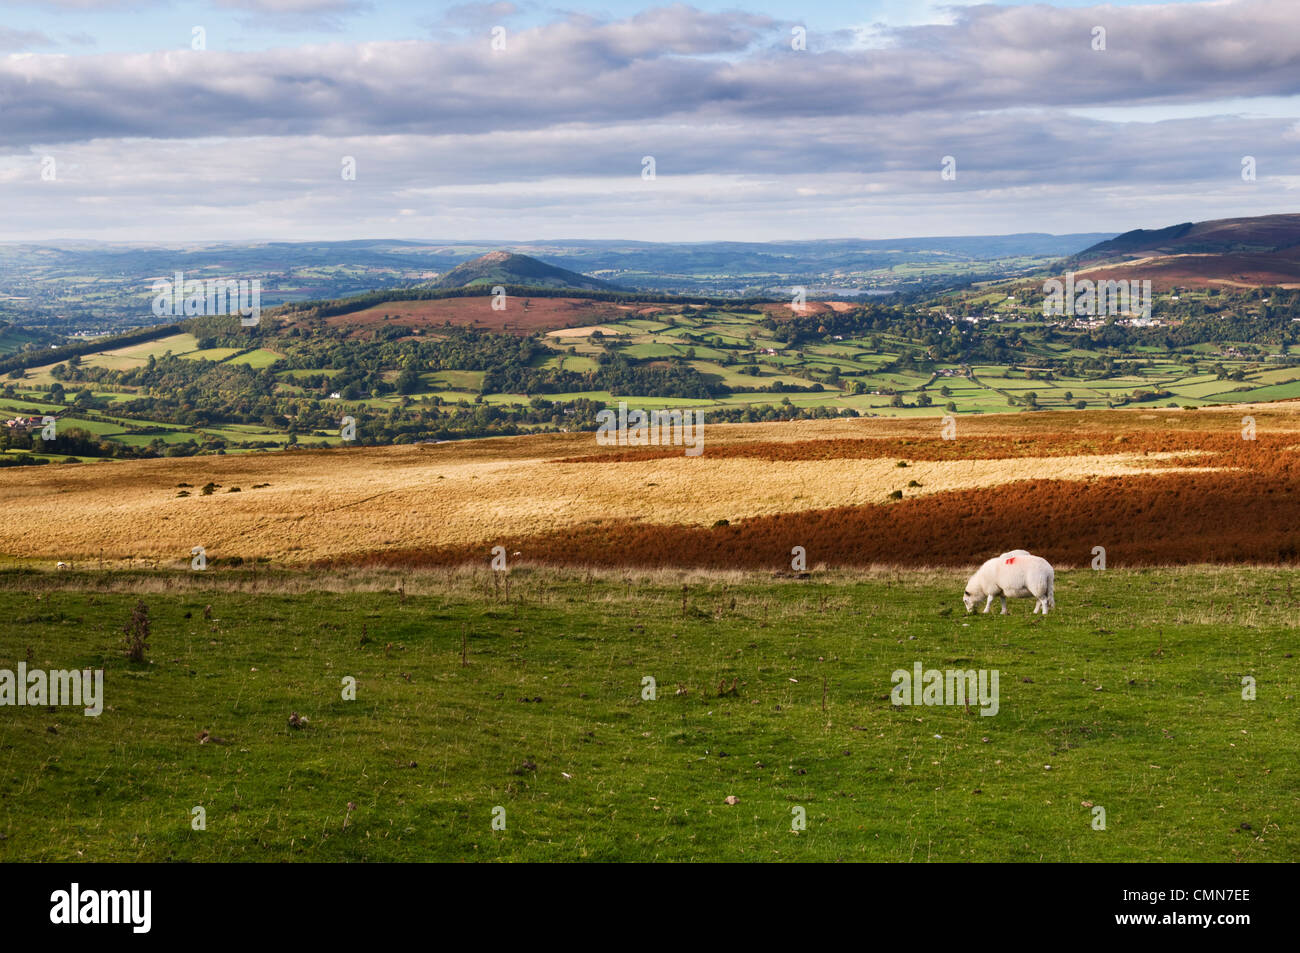 View over the Usk valley taken from Llangynidr moors on the B4560 Brecon Beacons national Park, Mid Wales in Autumn - Stock Image